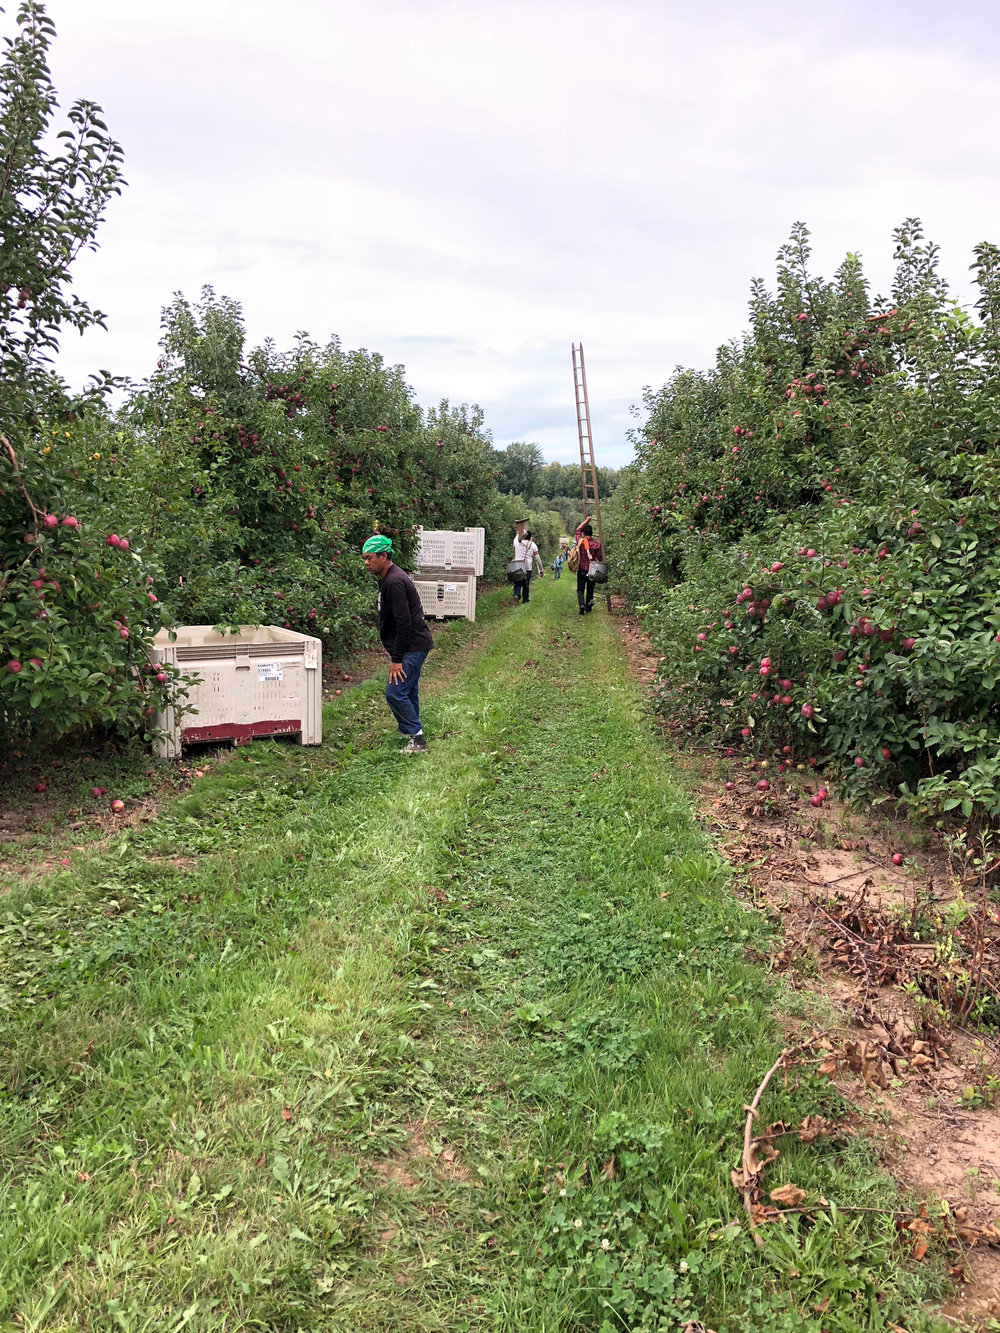 Harvest Season here at Abendroth's Apple Ridge Orchard